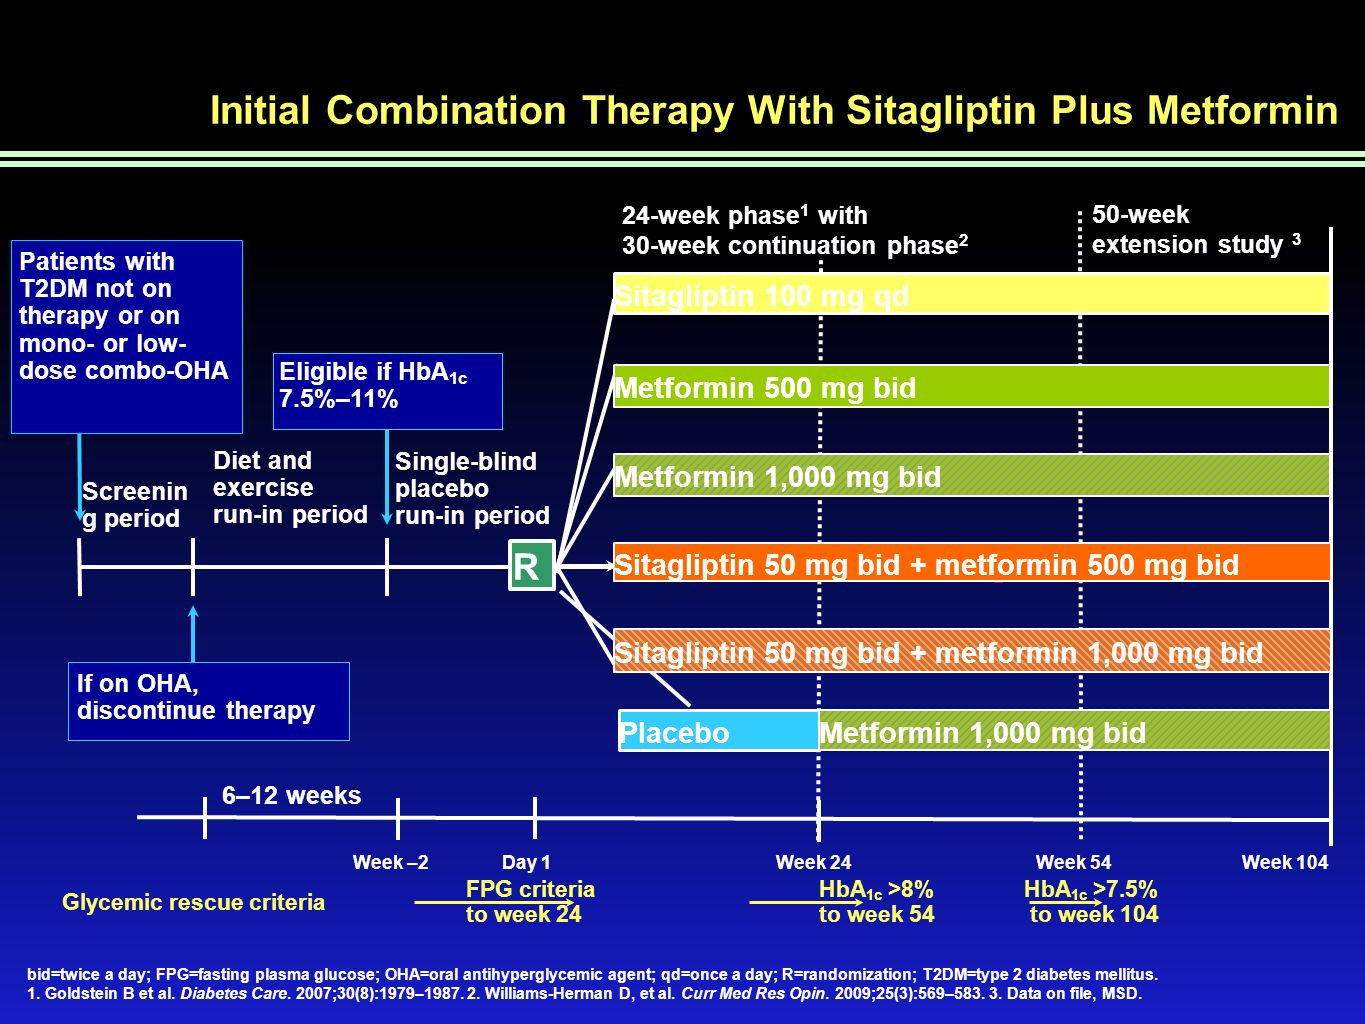 Initial Combination Therapy With Sitagliptin Plus Metformin